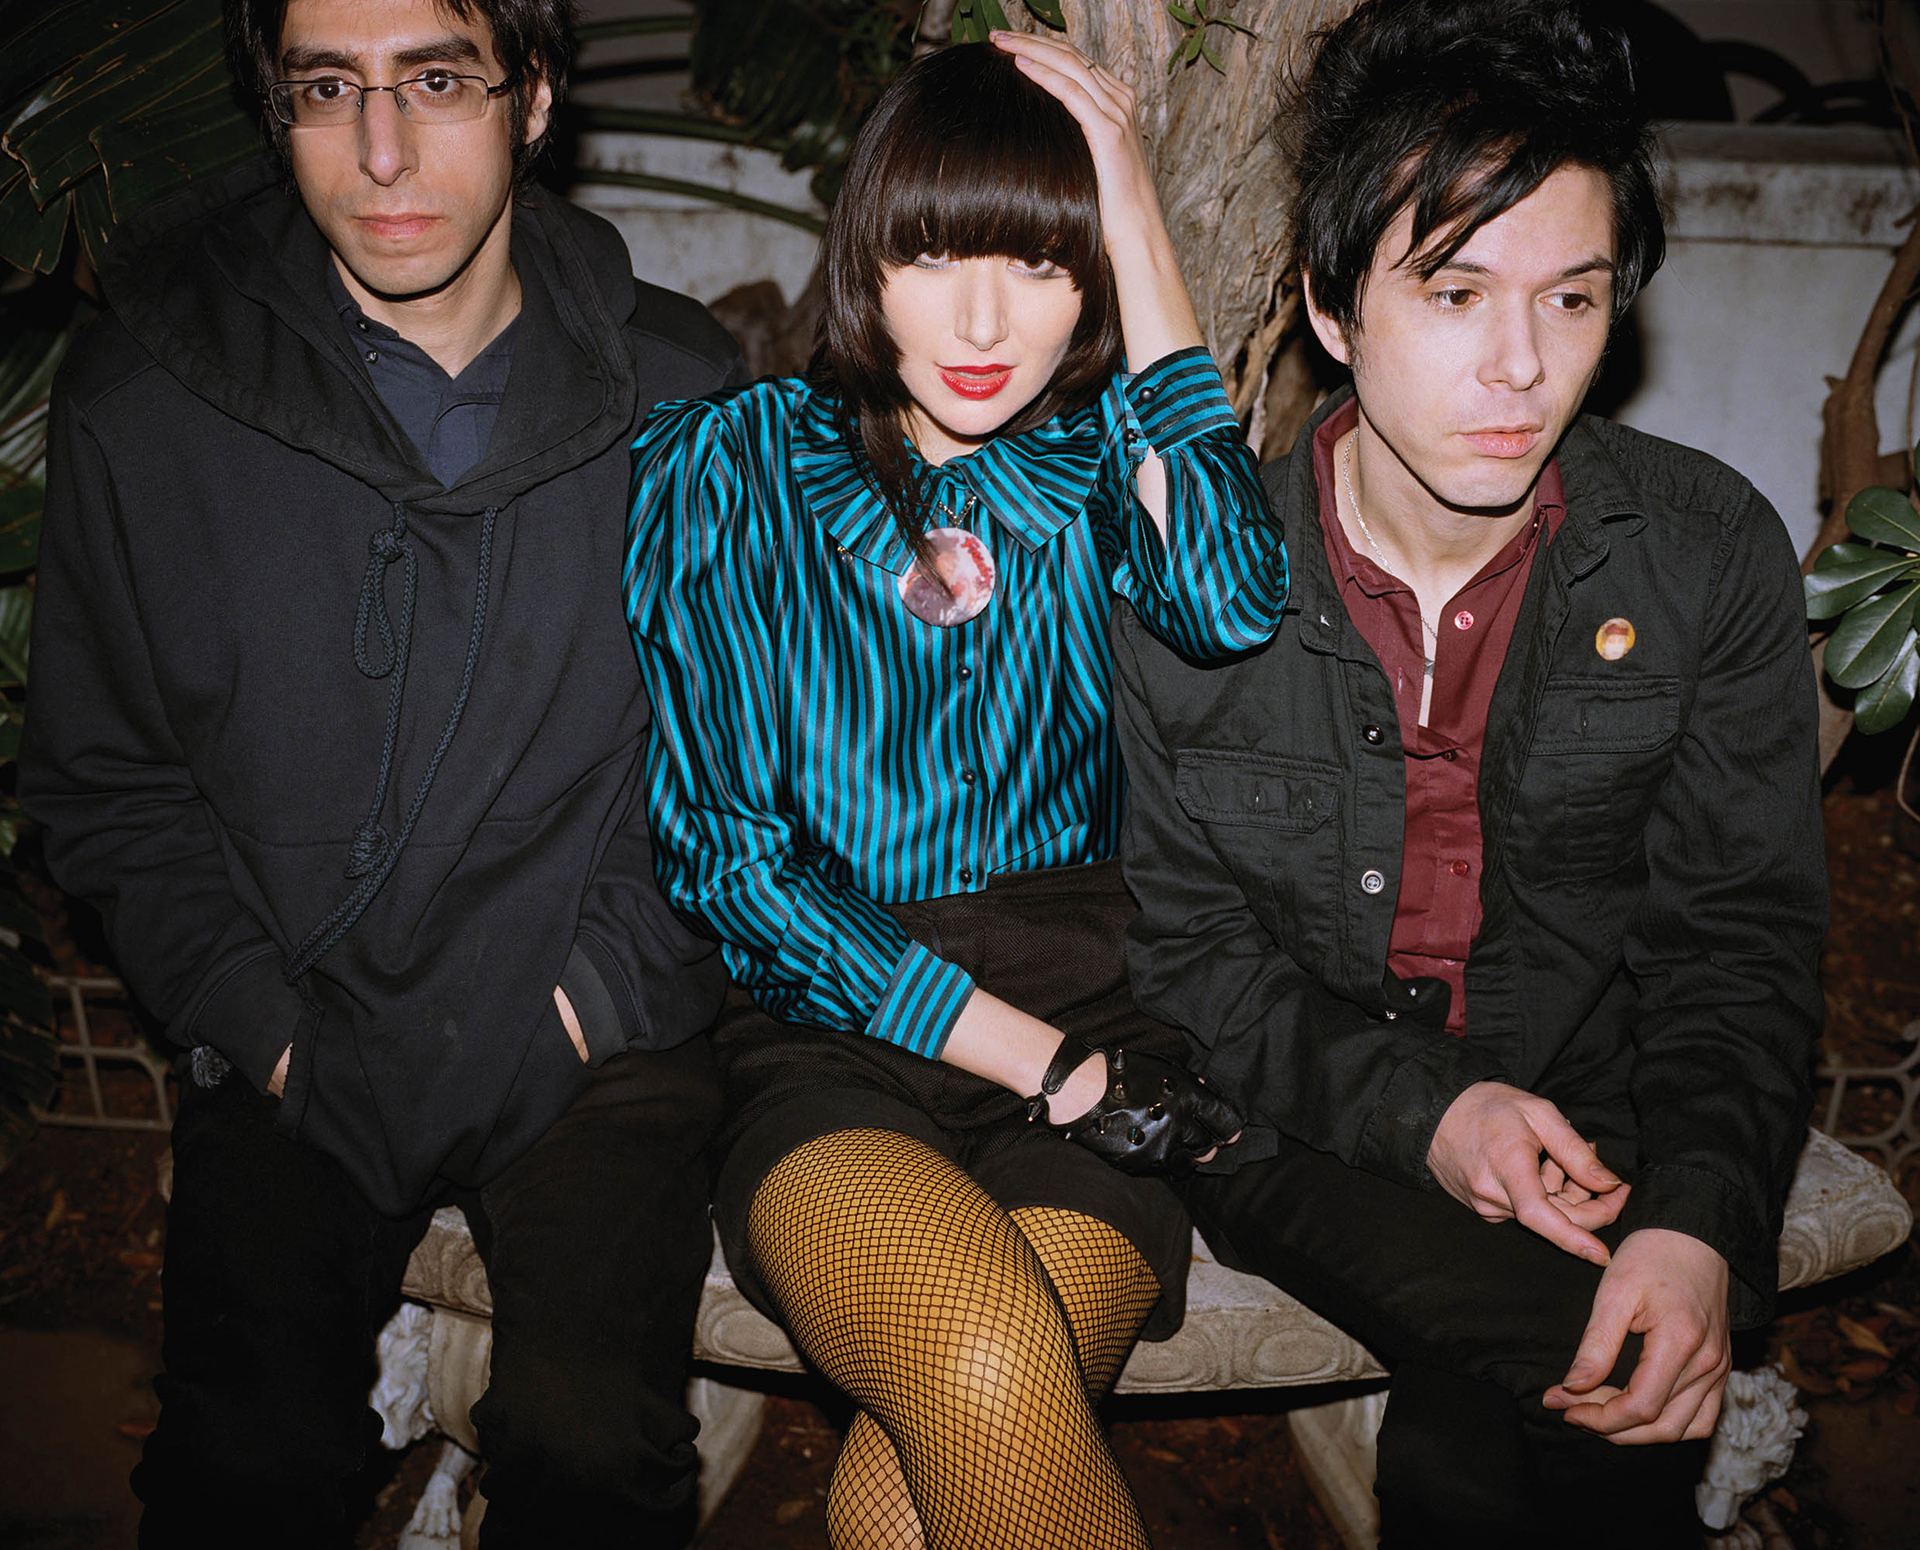 The Yeah Yeah Yeahs, with frontwoman Karen O, also sit atop the bill at the inaugural Just Like Heaven festival. (Image courtesy of Goldenvoice.)